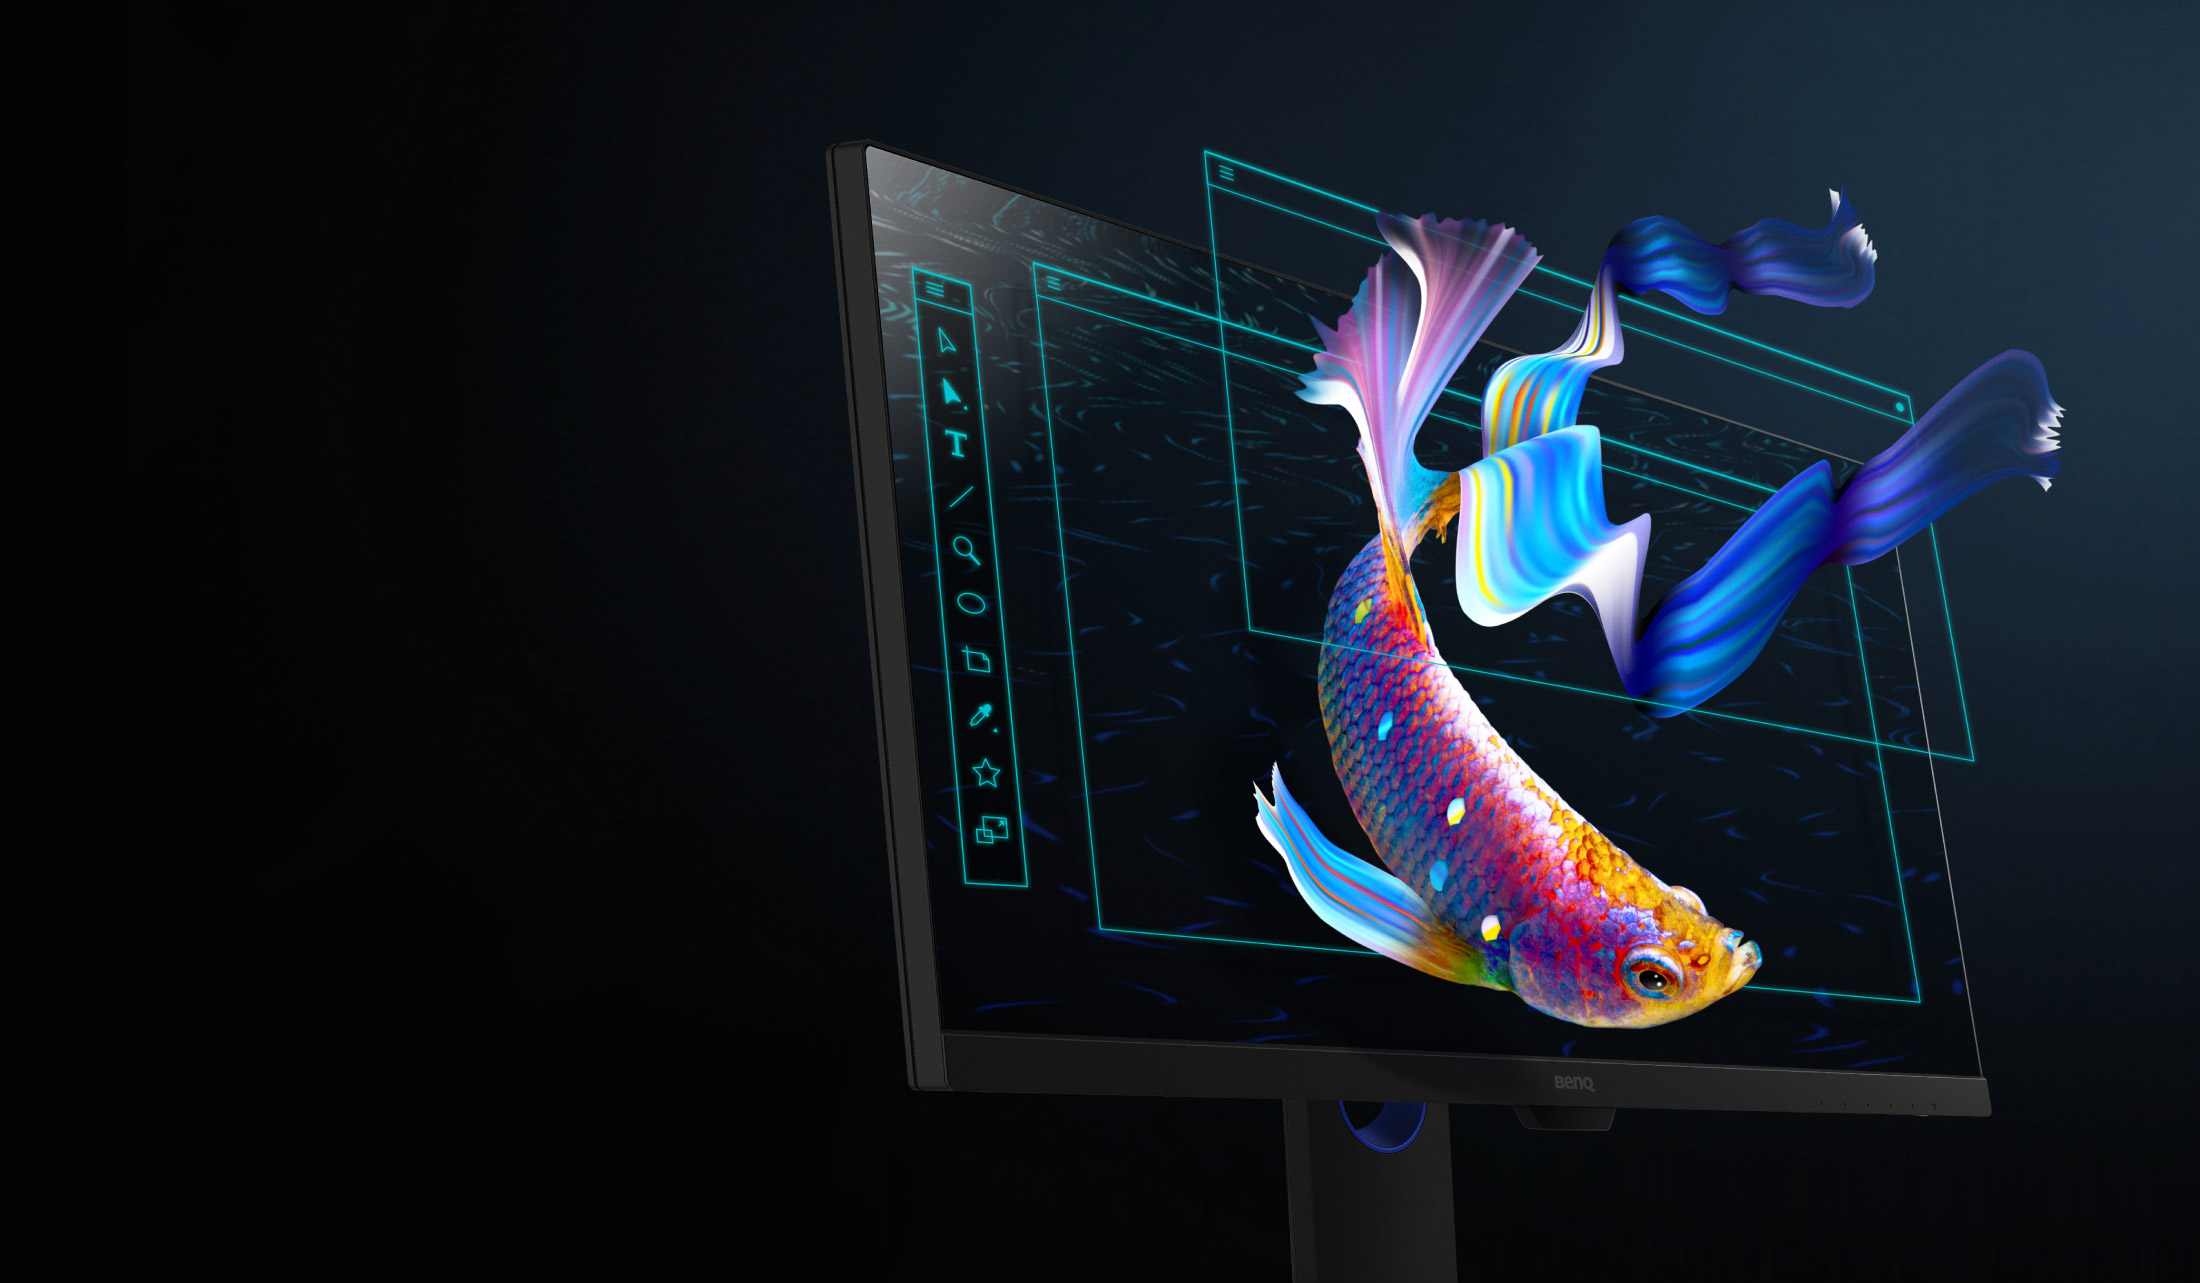 PD2705Q is a professional monitor that helps content creators like you to collect and classify all the ideas and then put them into creative art form.